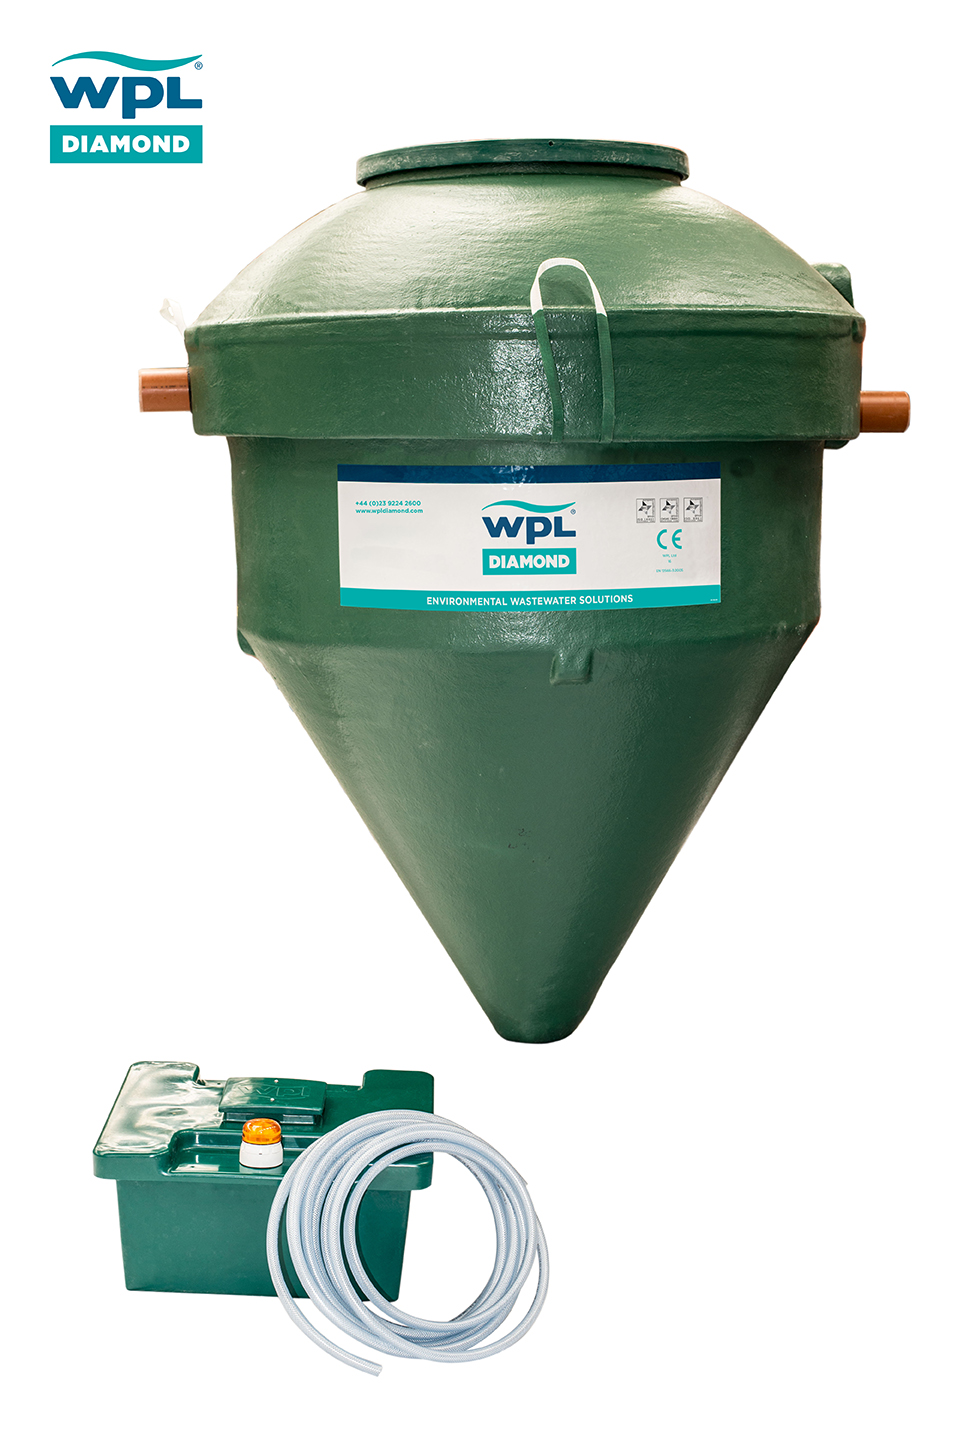 Image of the WPL Diamond DMS package wastewater (sewage) treatment tank and the kisok which houses the blowers